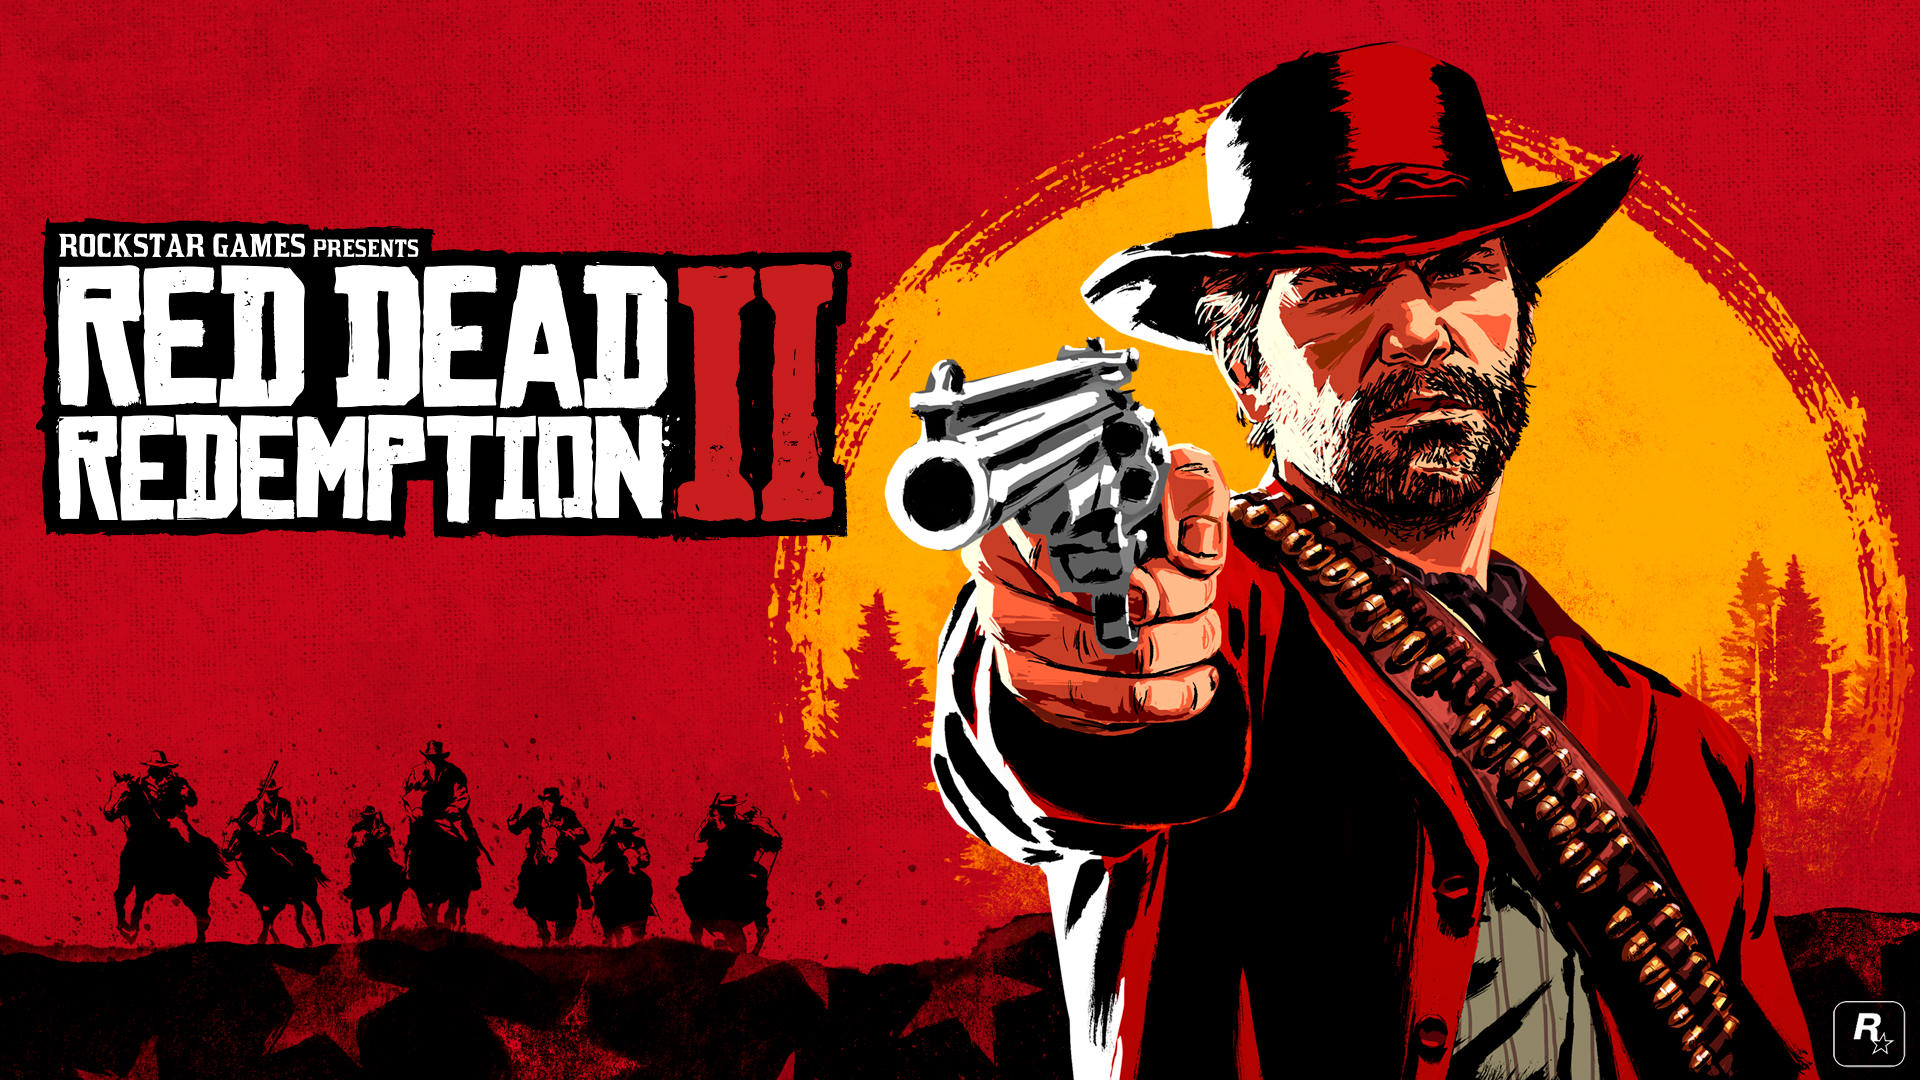 Red Dead Redemption II popularity has led to a rise in searches for wild west porn